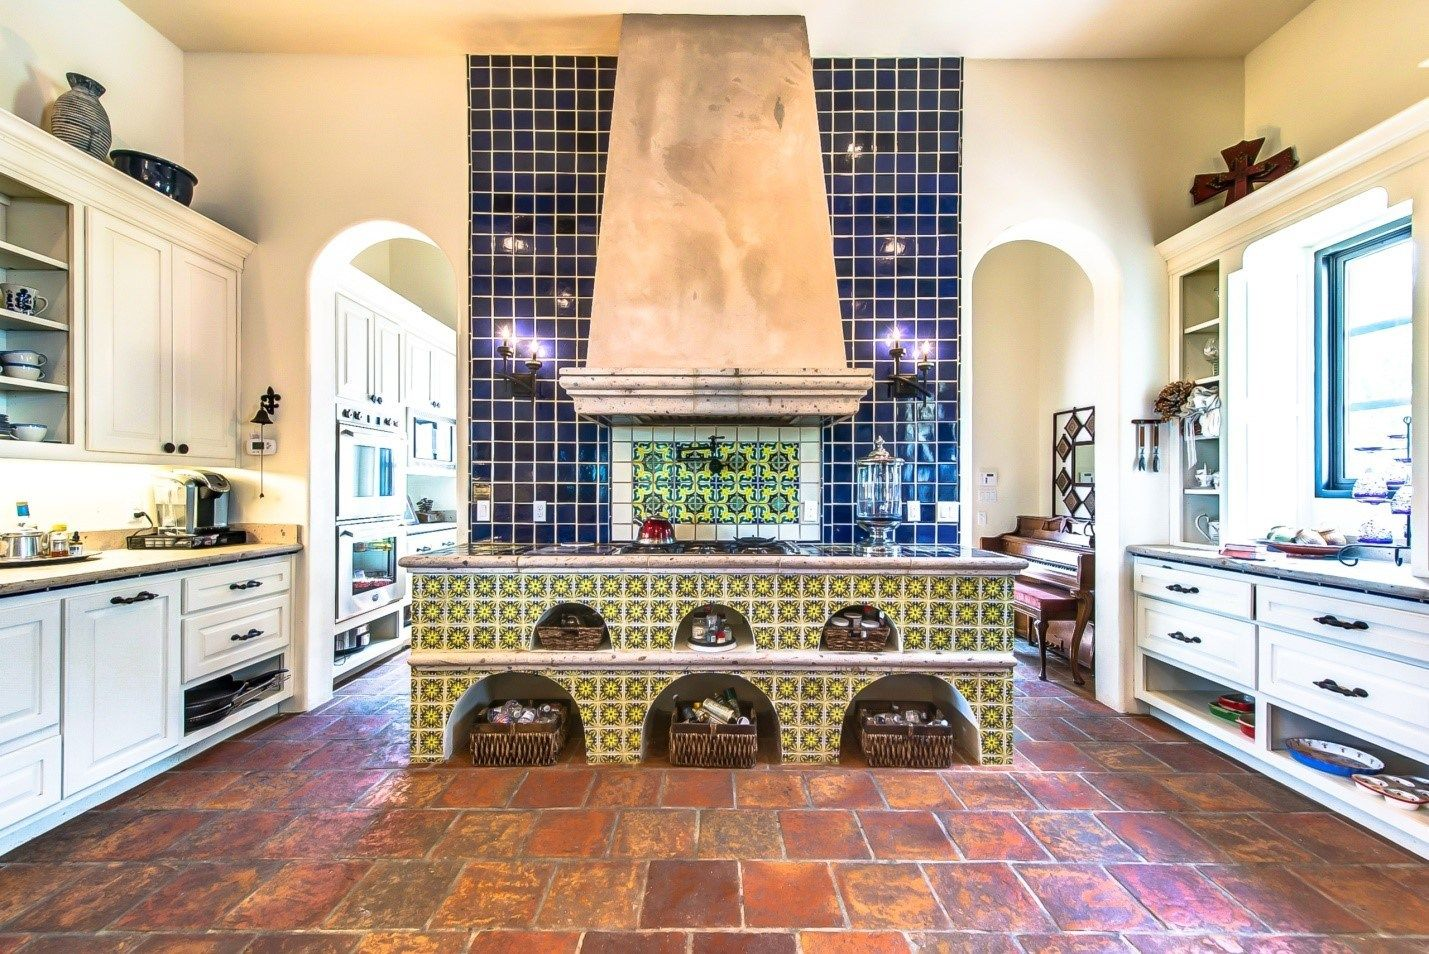 44 top talavera tile design ideas from Talavera Tile Kitchen ...